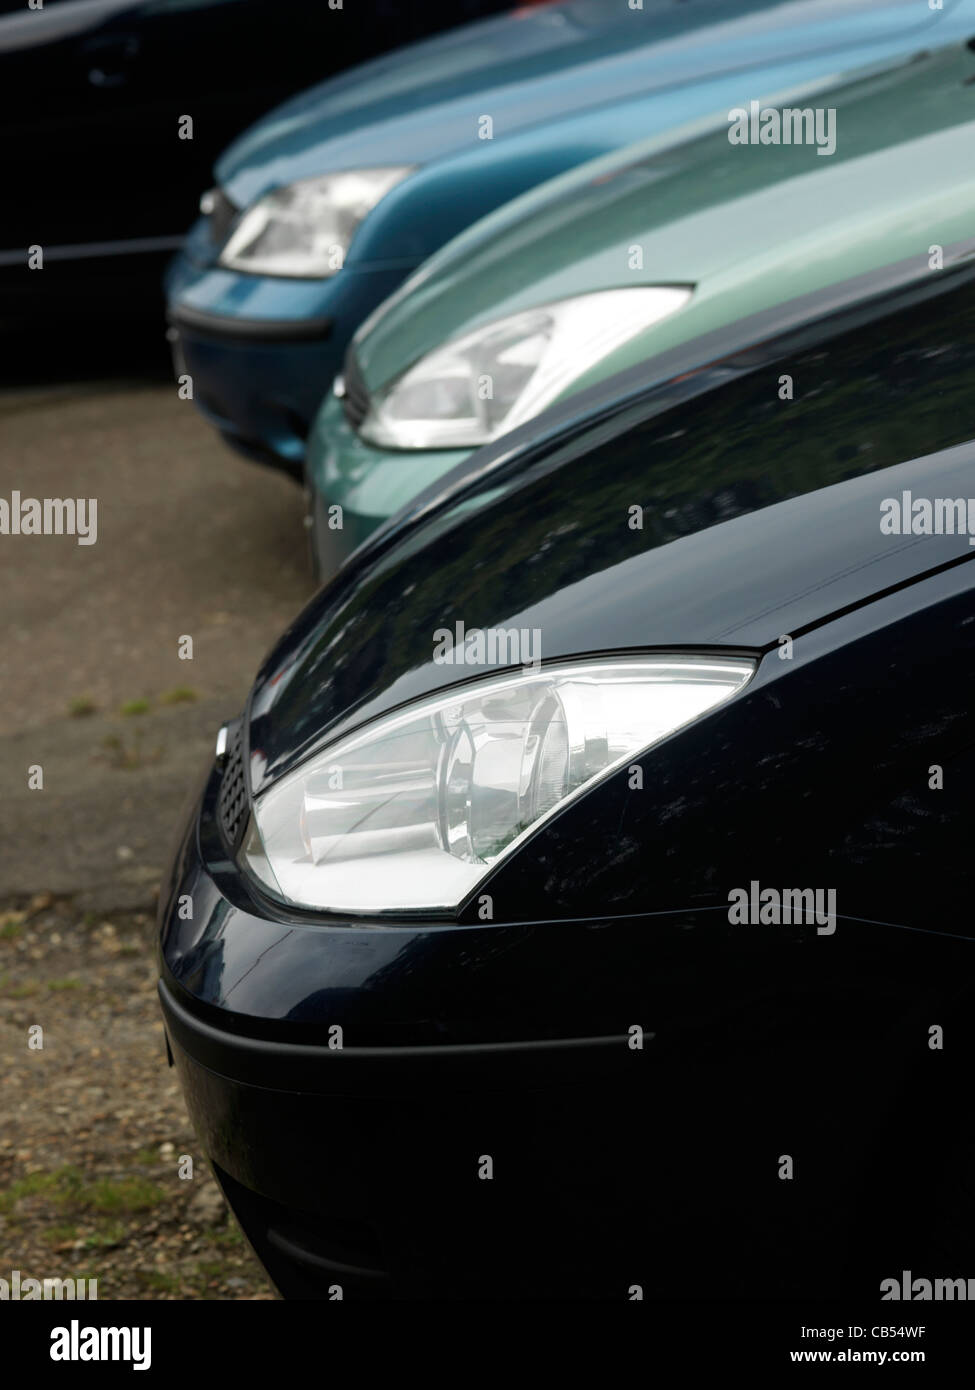 Cars On Sale In Car Lot England - Stock Image